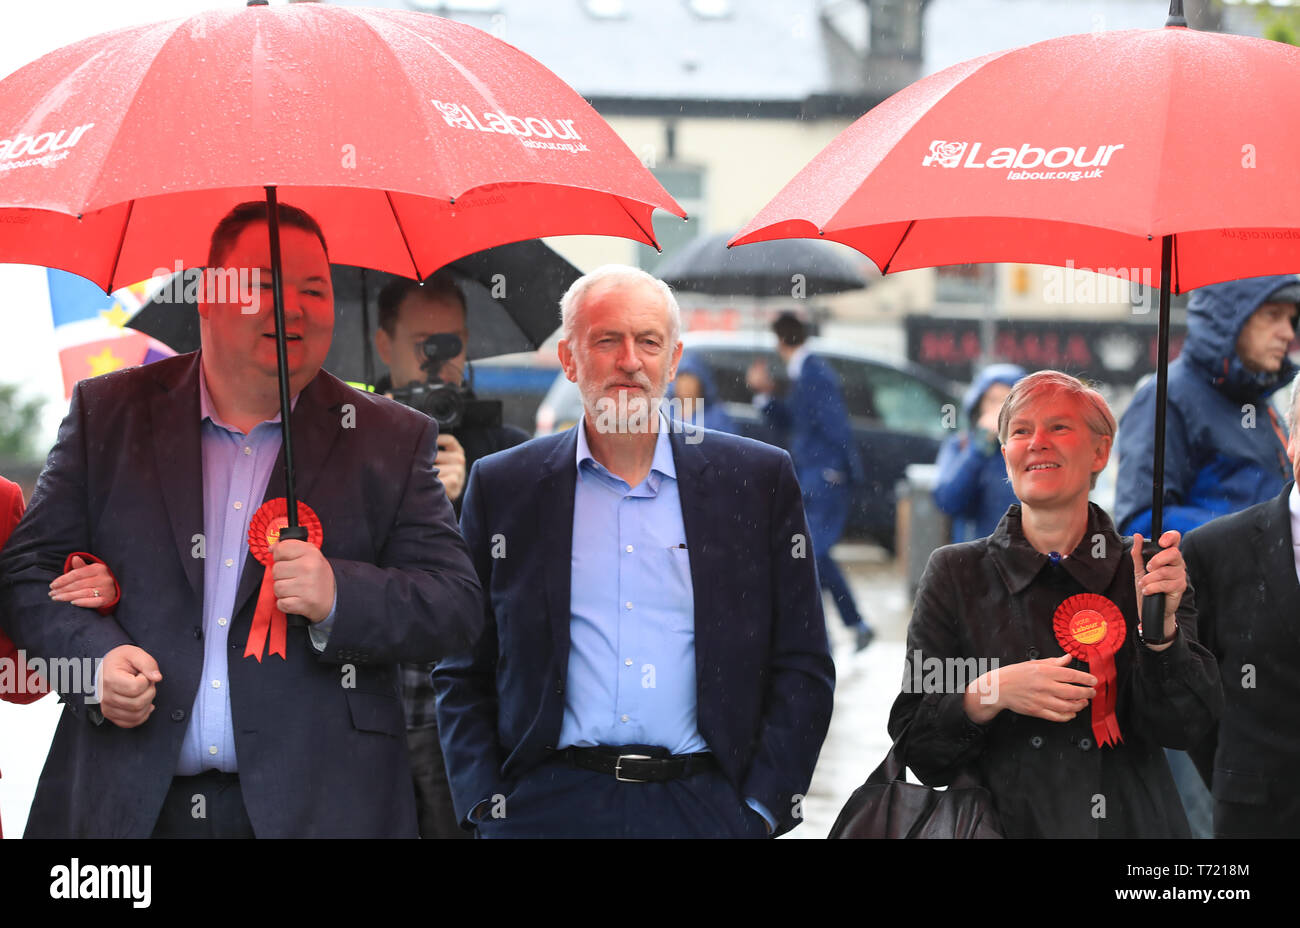 Labour Party leader Jeremy Corbyn celebrates the election result for Trafford Council with Labour Party activists at the Waterside Arts Centre, Manchester following the voting in the English council elections. - Stock Image